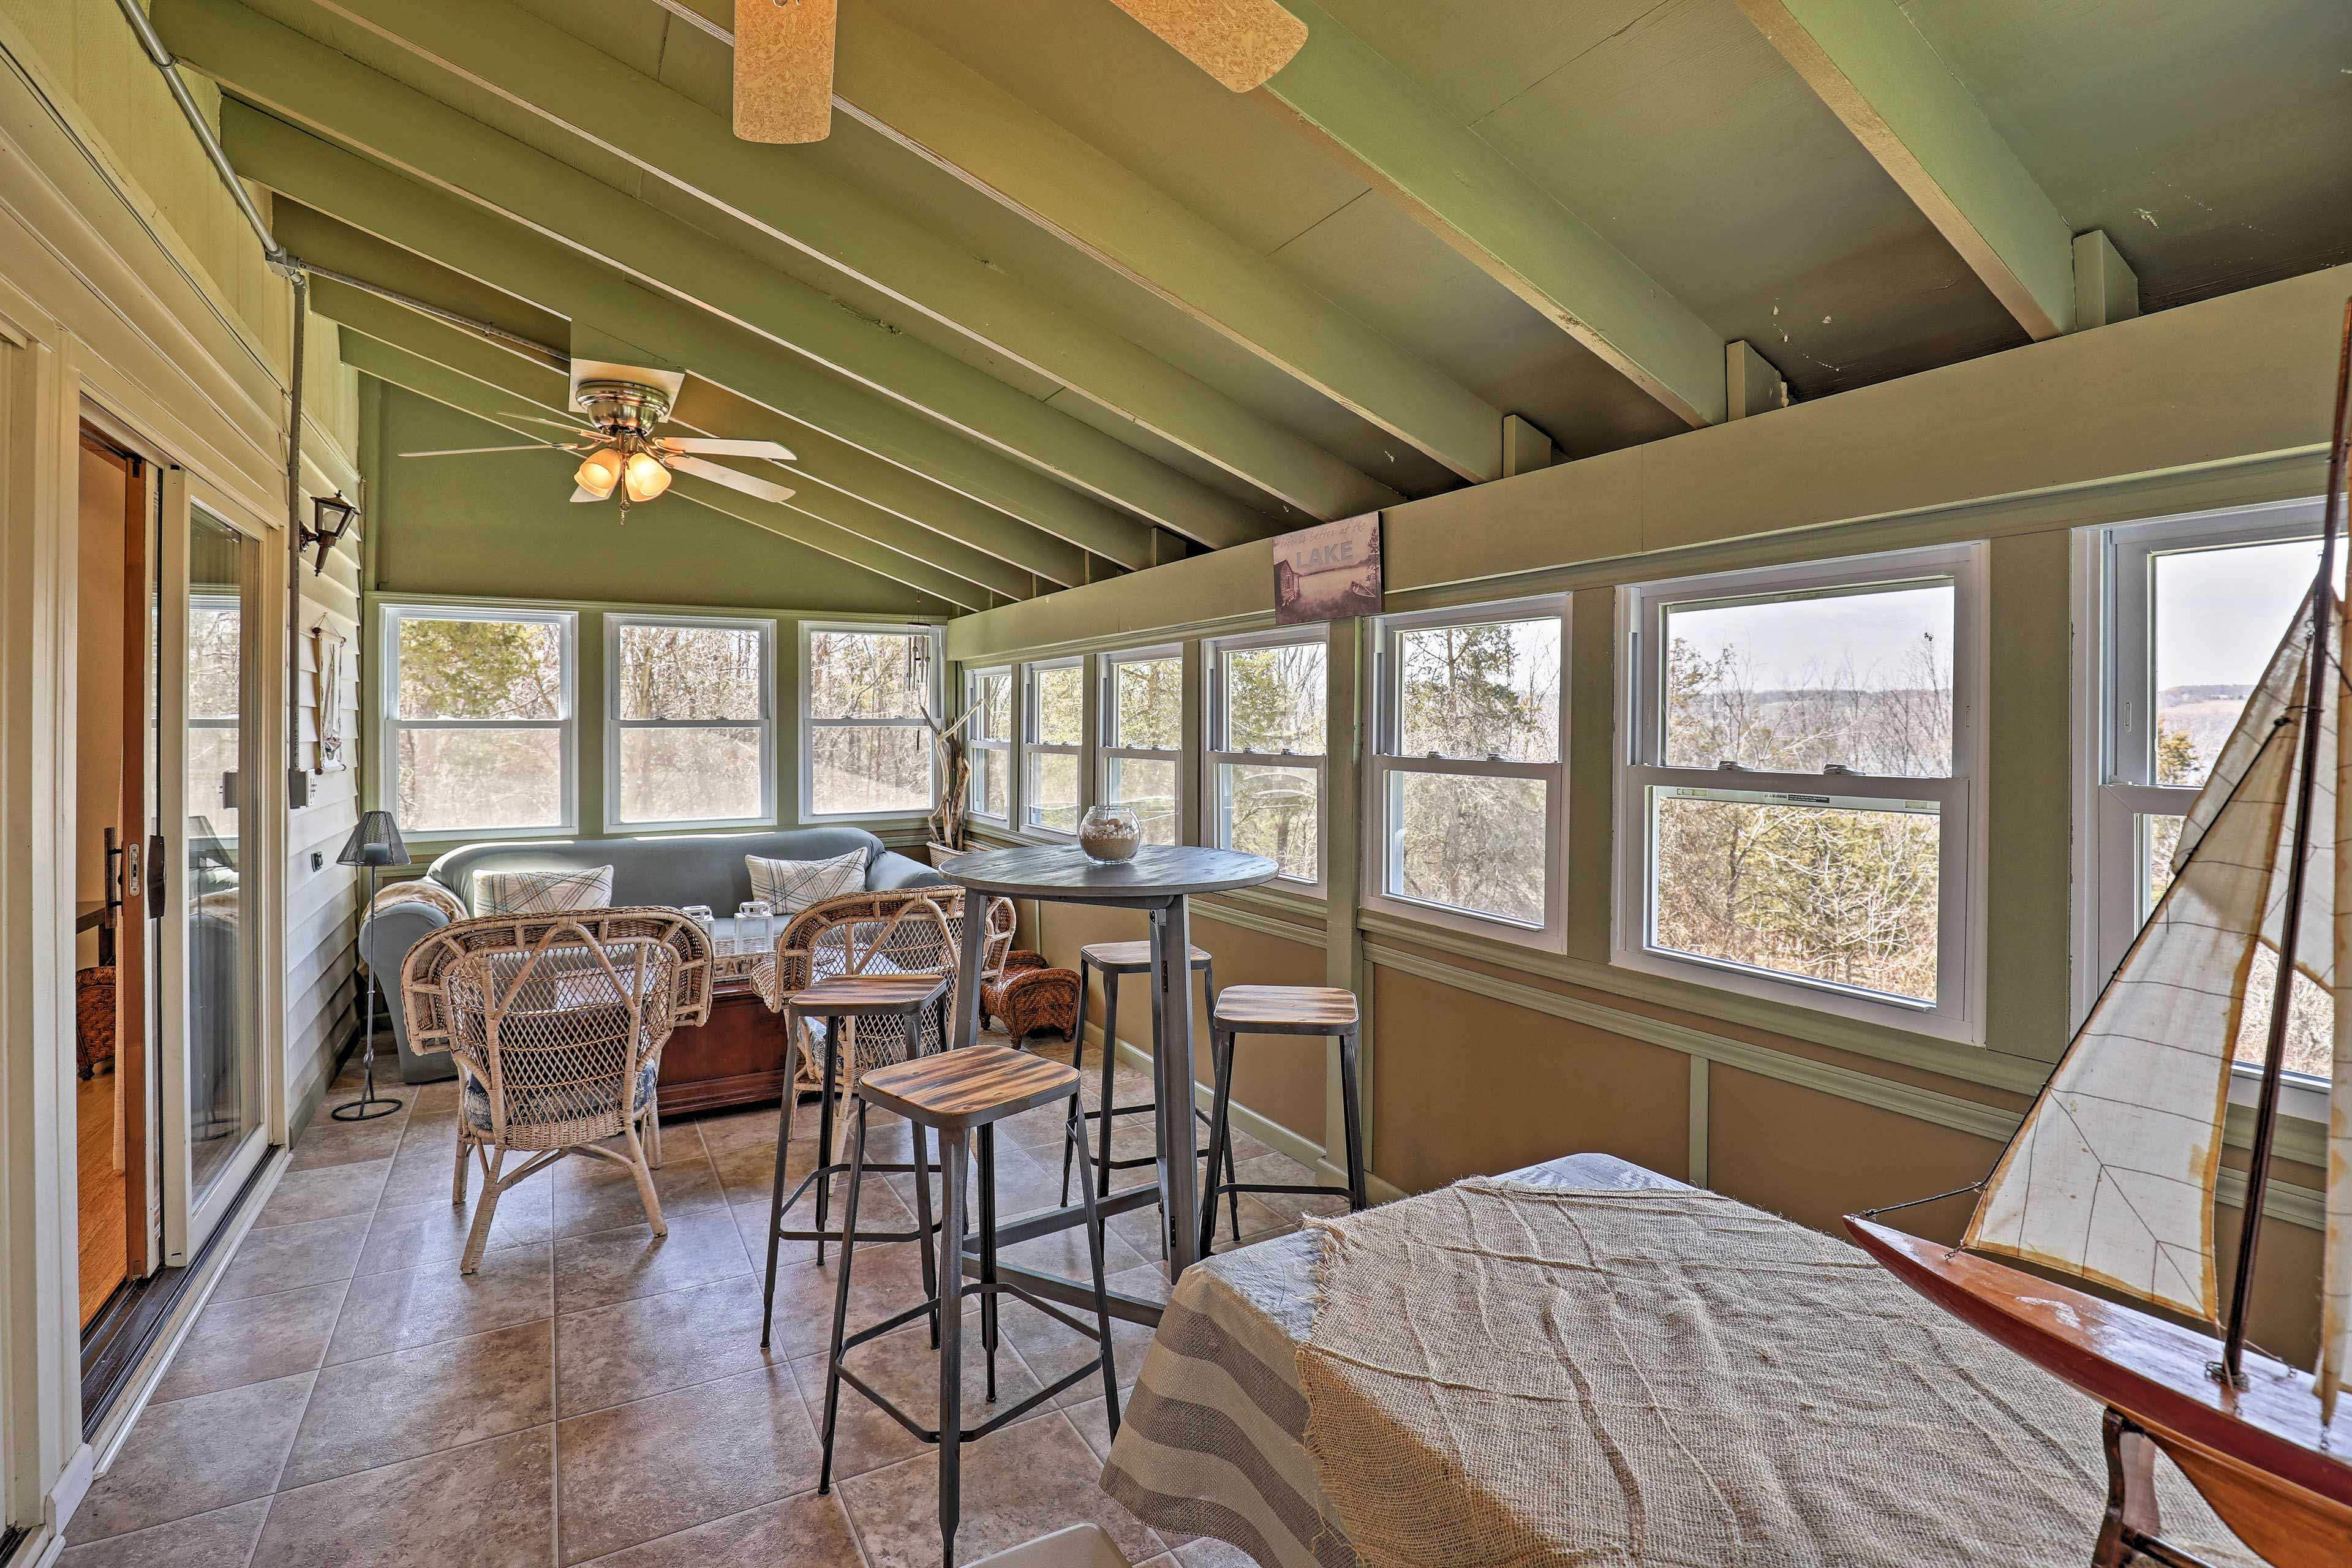 Dine on the screened-in porch.